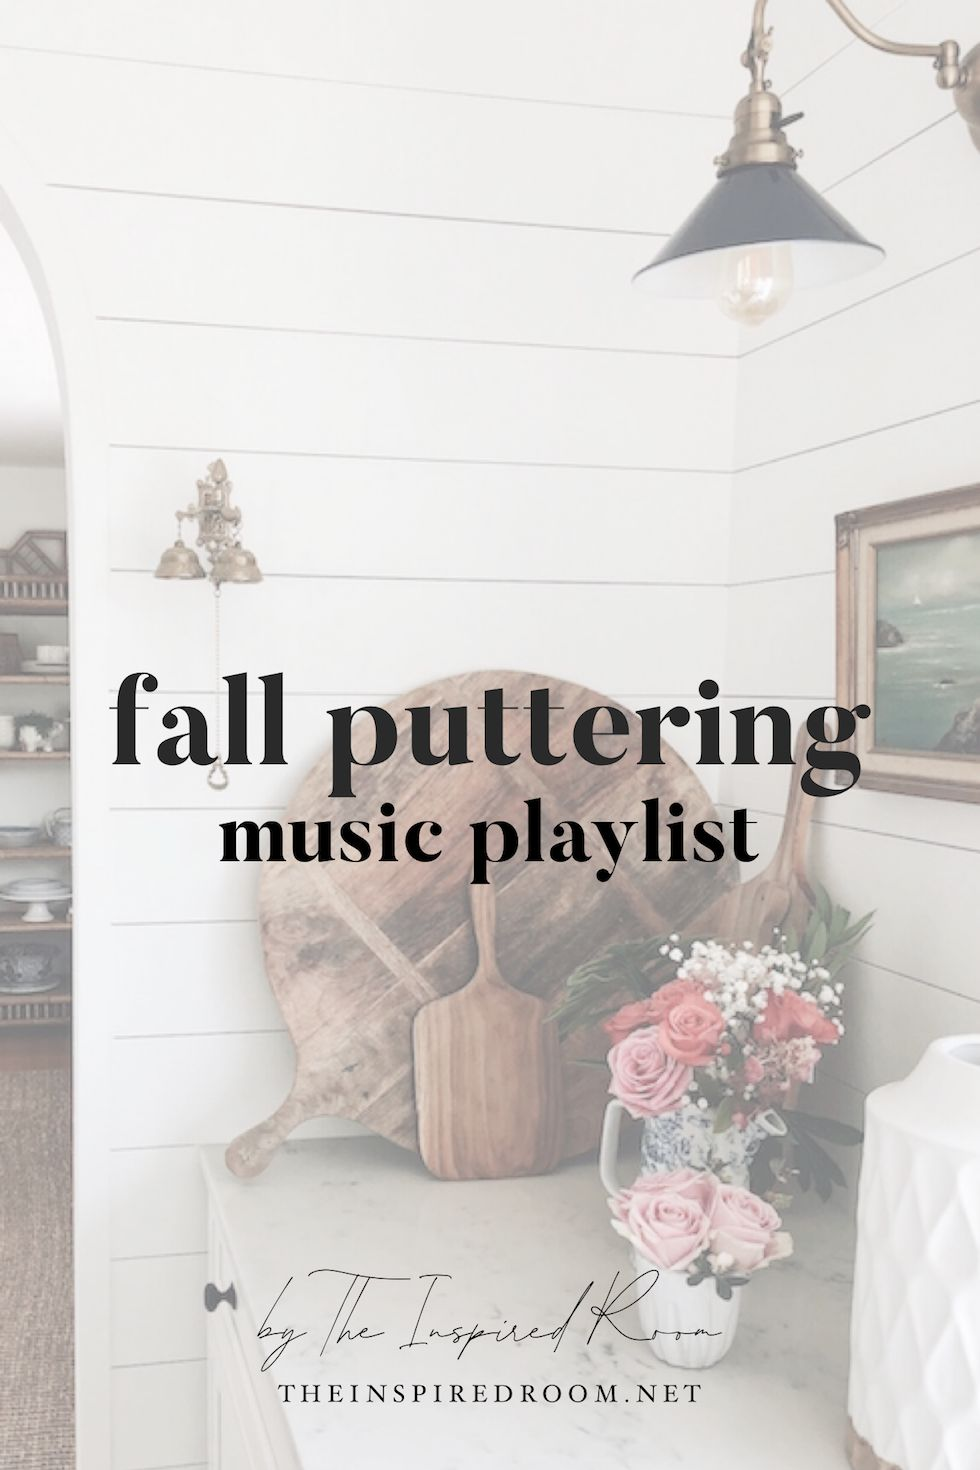 Fall Puttering Playlist